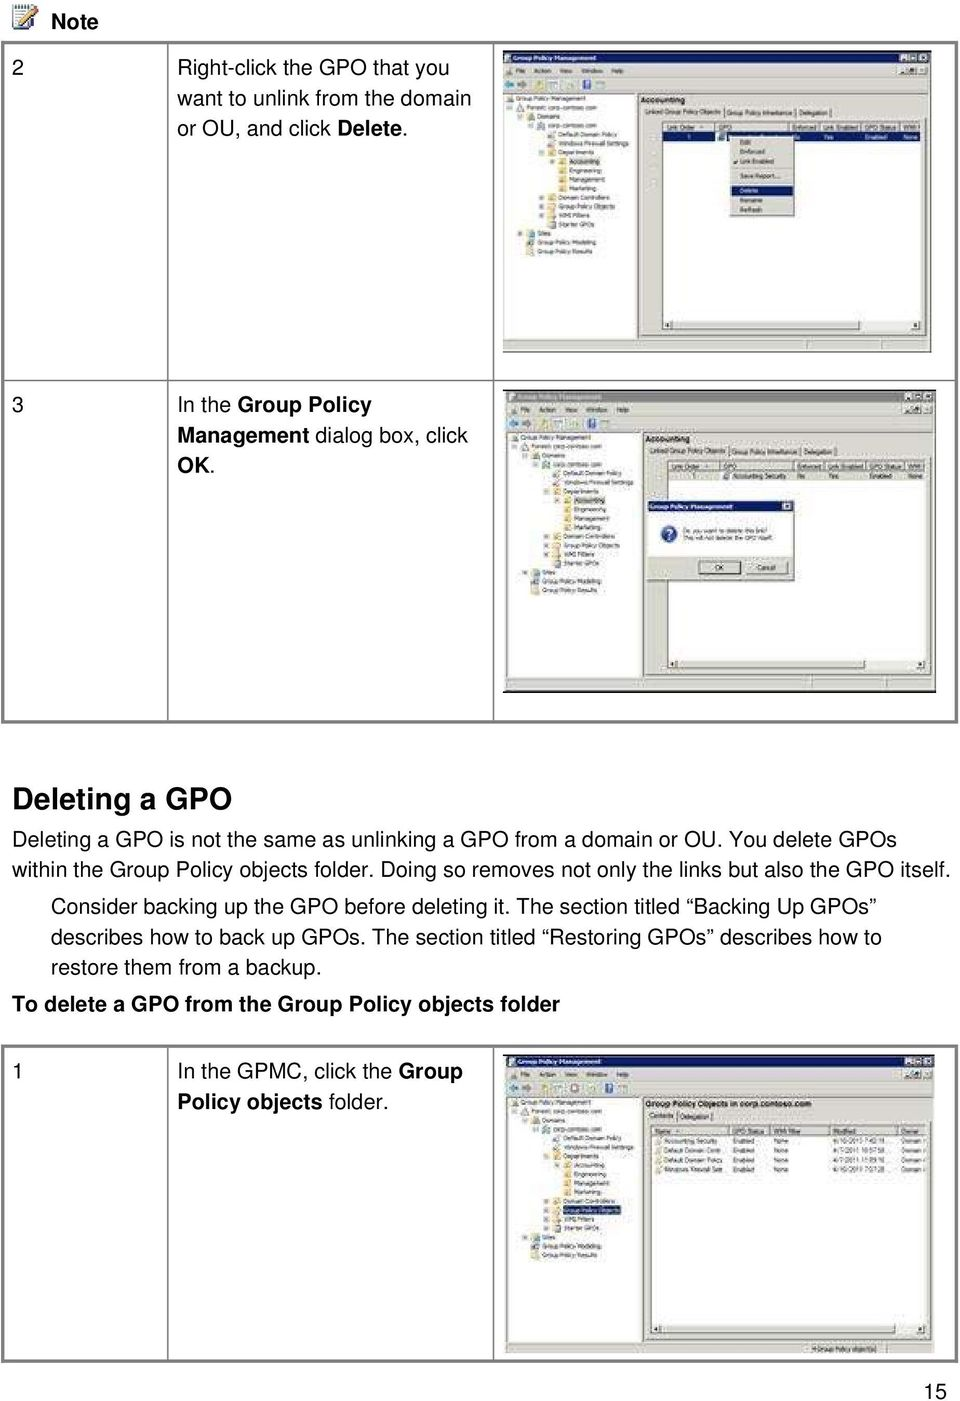 Doing so removes not only the links but also the GPO itself. Consider backing up the GPO before deleting it.